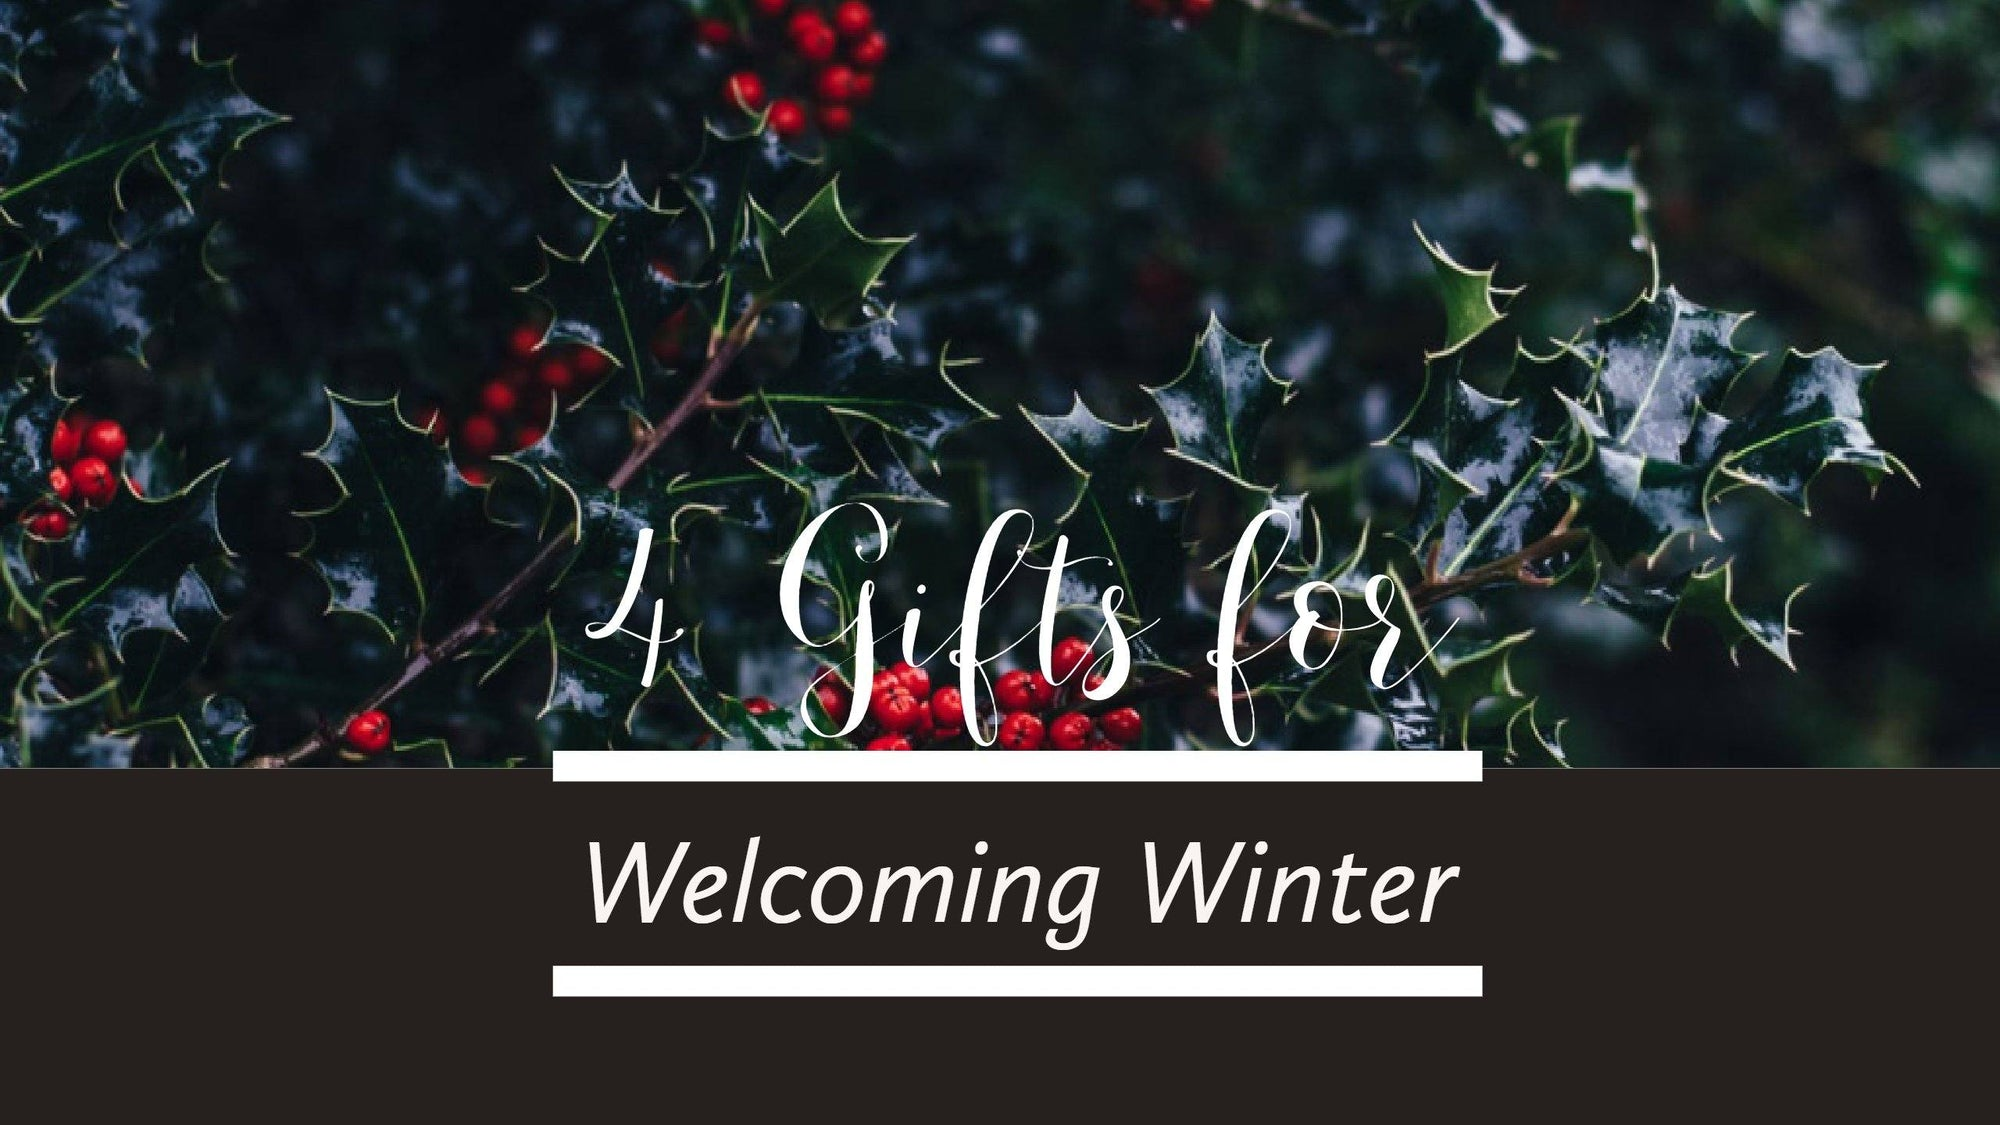 4 Gifts for Welcoming Winter